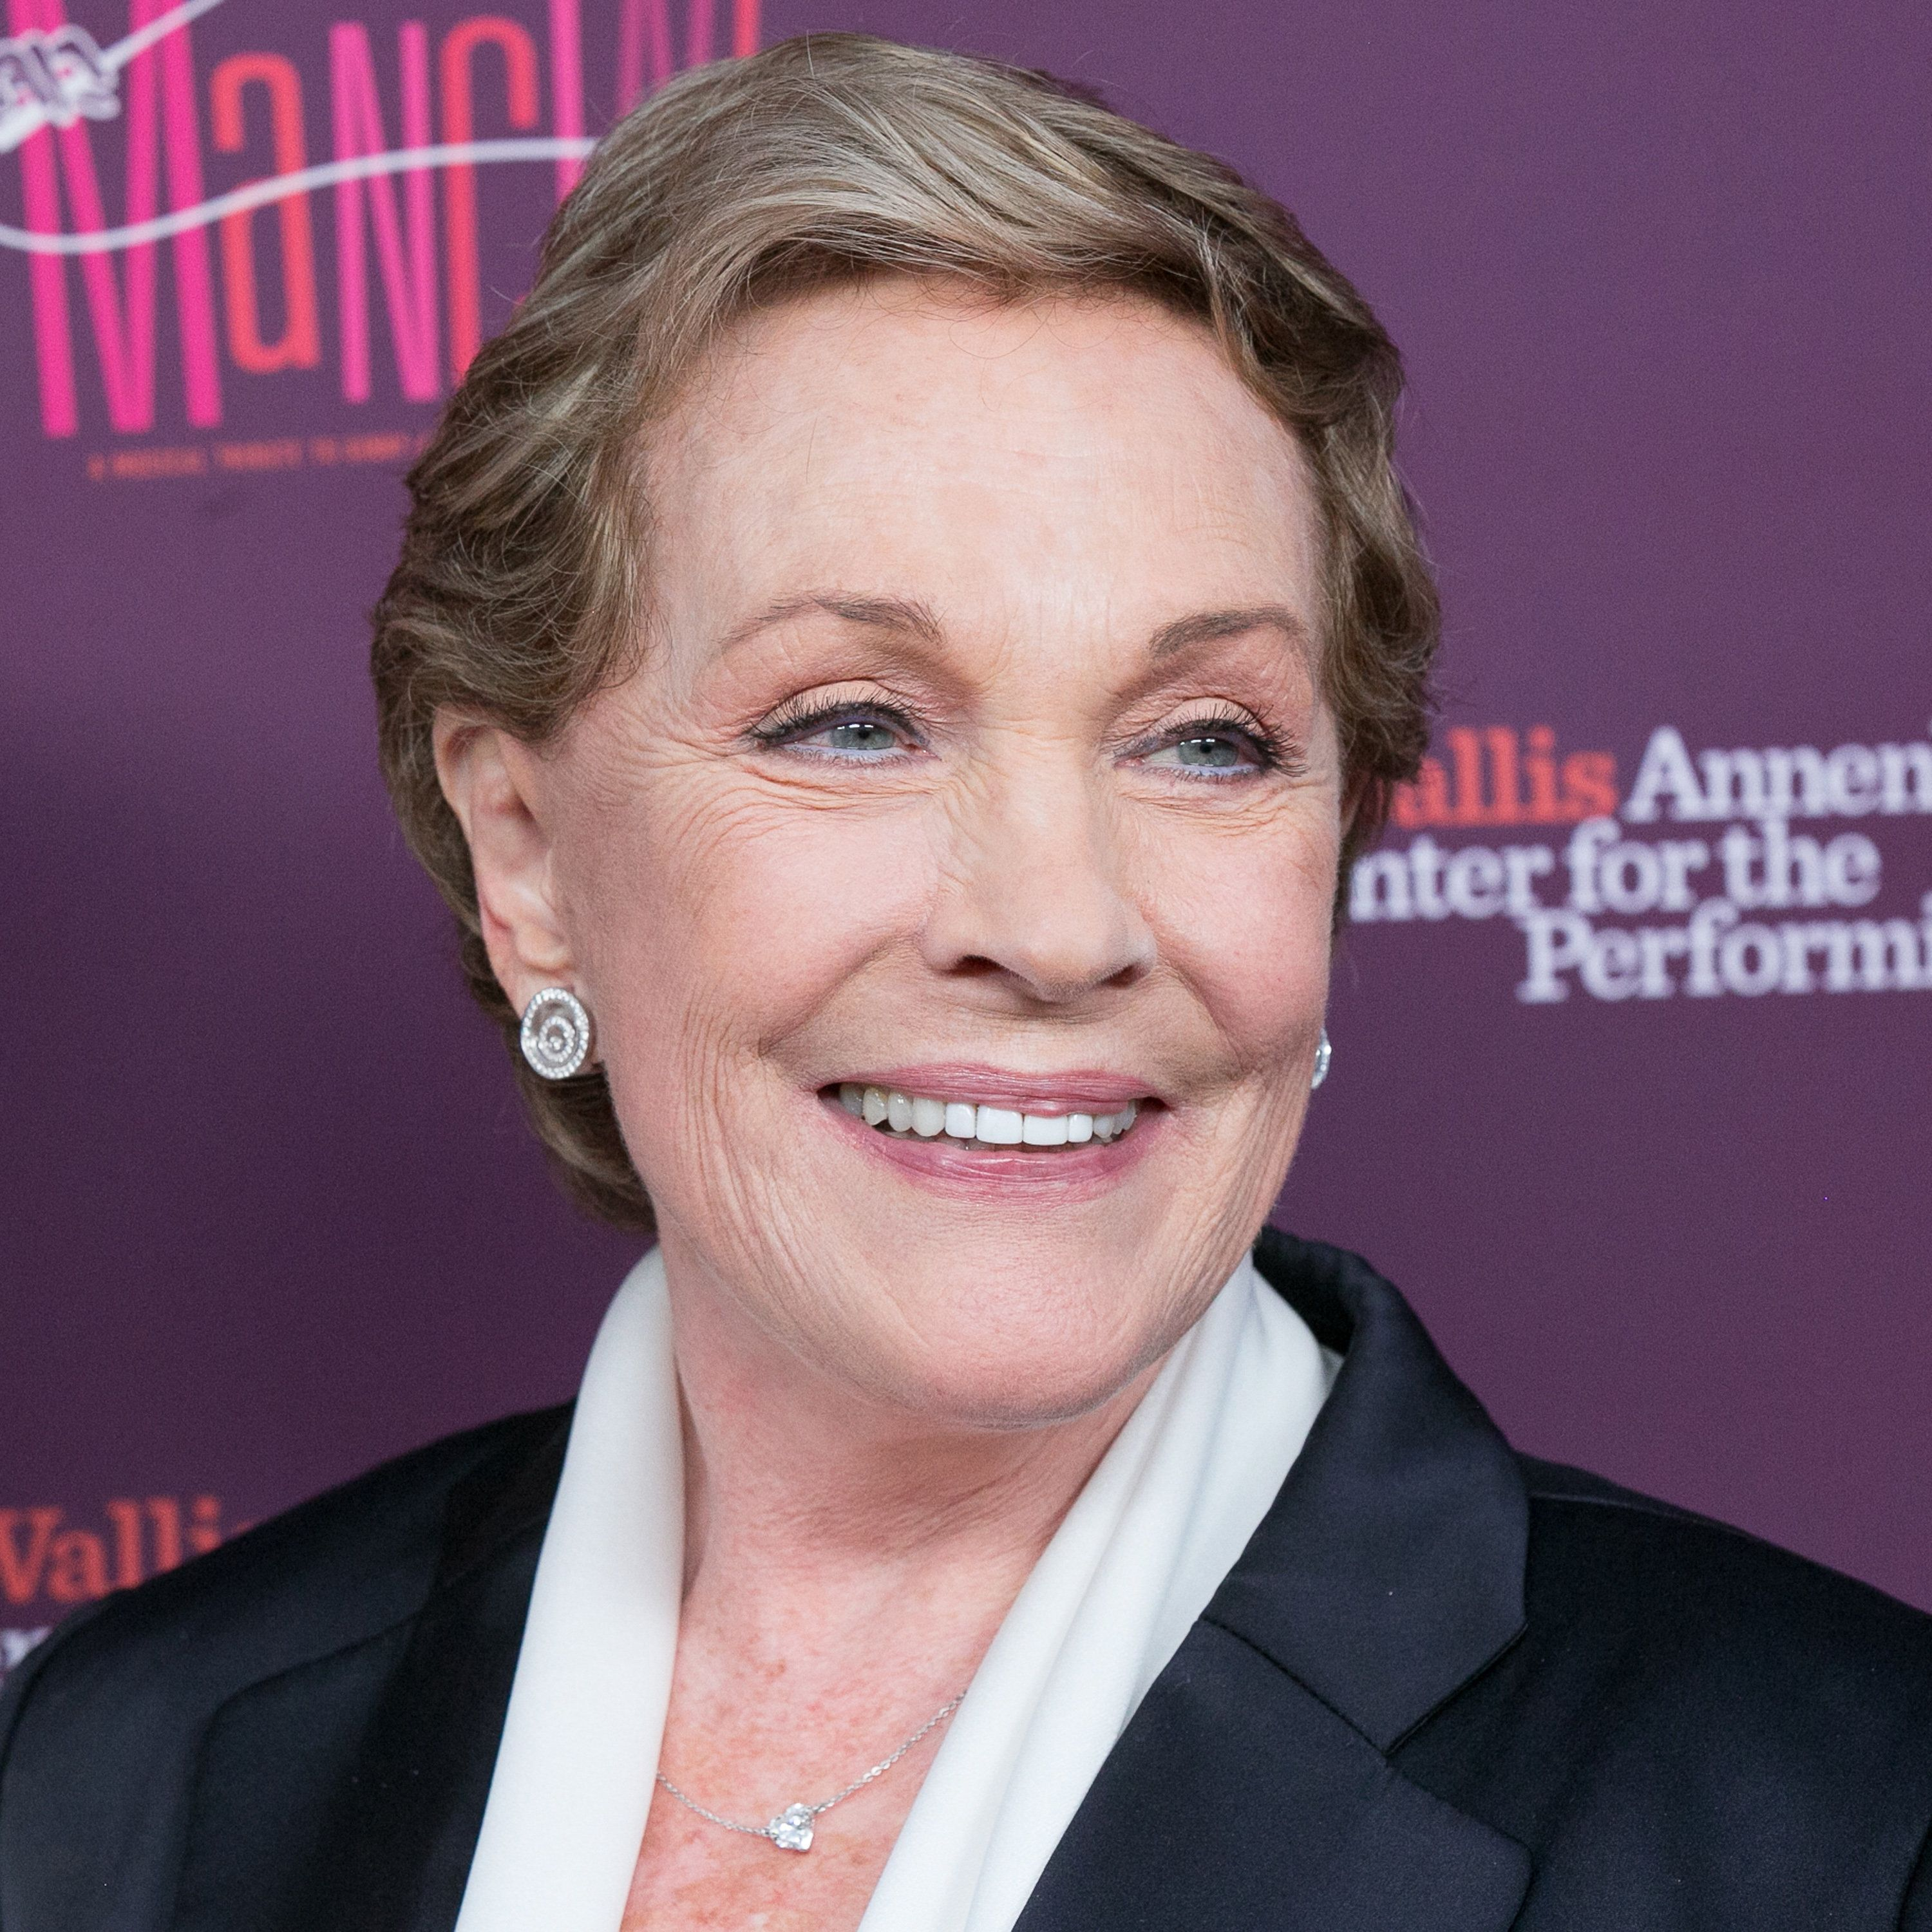 BEVERLY HILLS, CA - APRIL 01:  Julie Andrews arrives for Mancini Delivered - A Musical Tribute to Ginny and Henry Mancini at Wallis Annenberg Center for the Performing Arts on April 1, 2017 in Beverly Hills, California.  (Photo by Gabriel Olsen/FilmMagic)